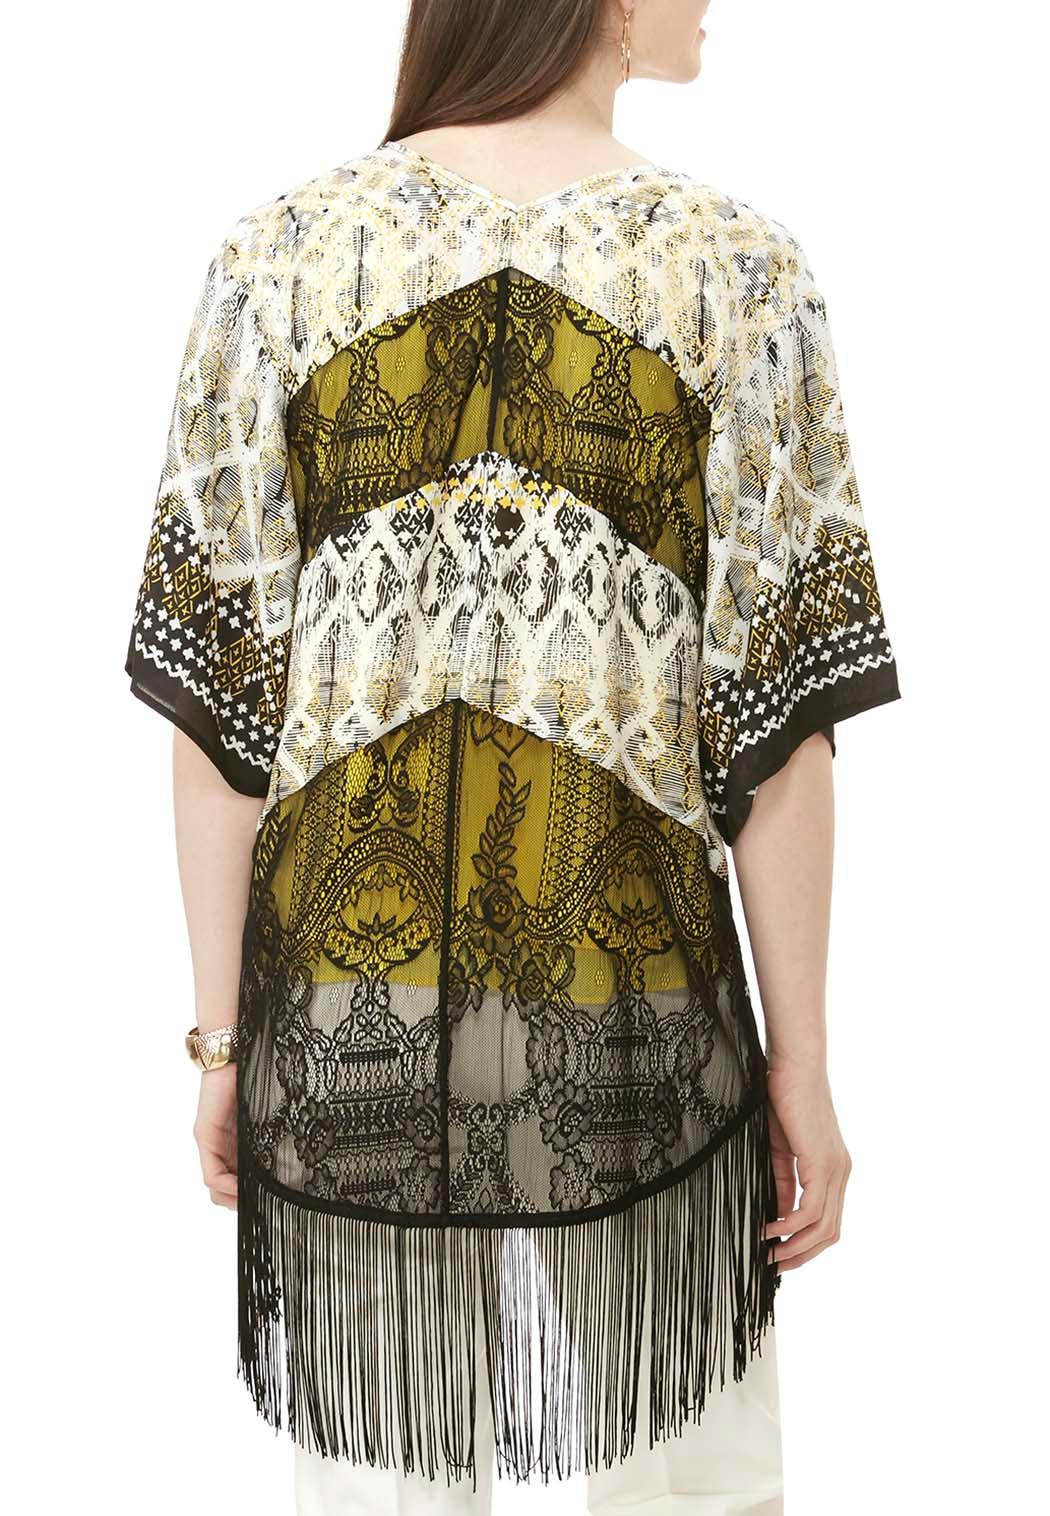 Lace Inset Abstract Kimono Cardigan Tops Cato Fashions